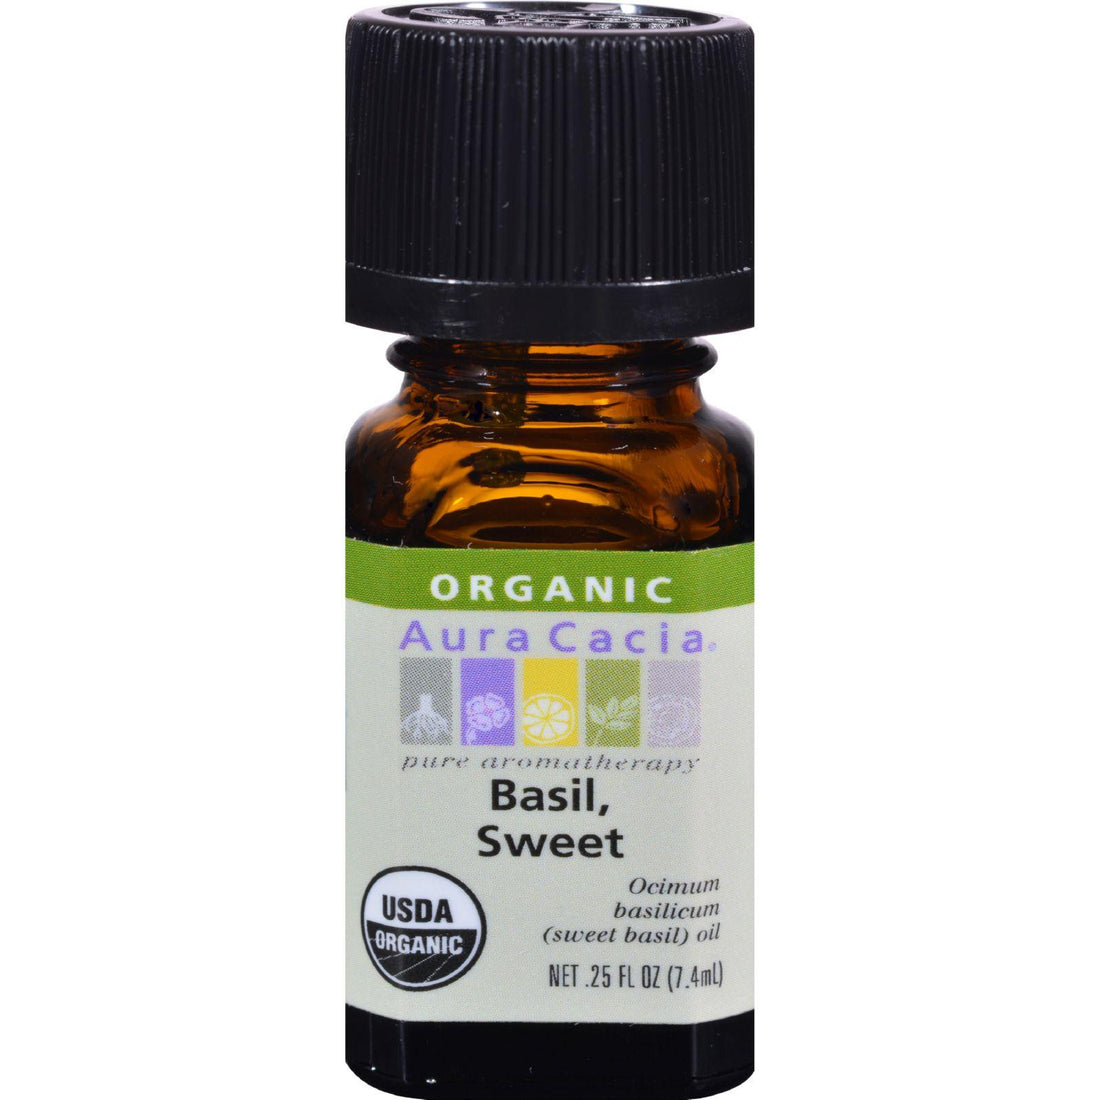 Mother Mantis: Aura Cacia Organic Basil Sweet - .25 Oz Aura Cacia